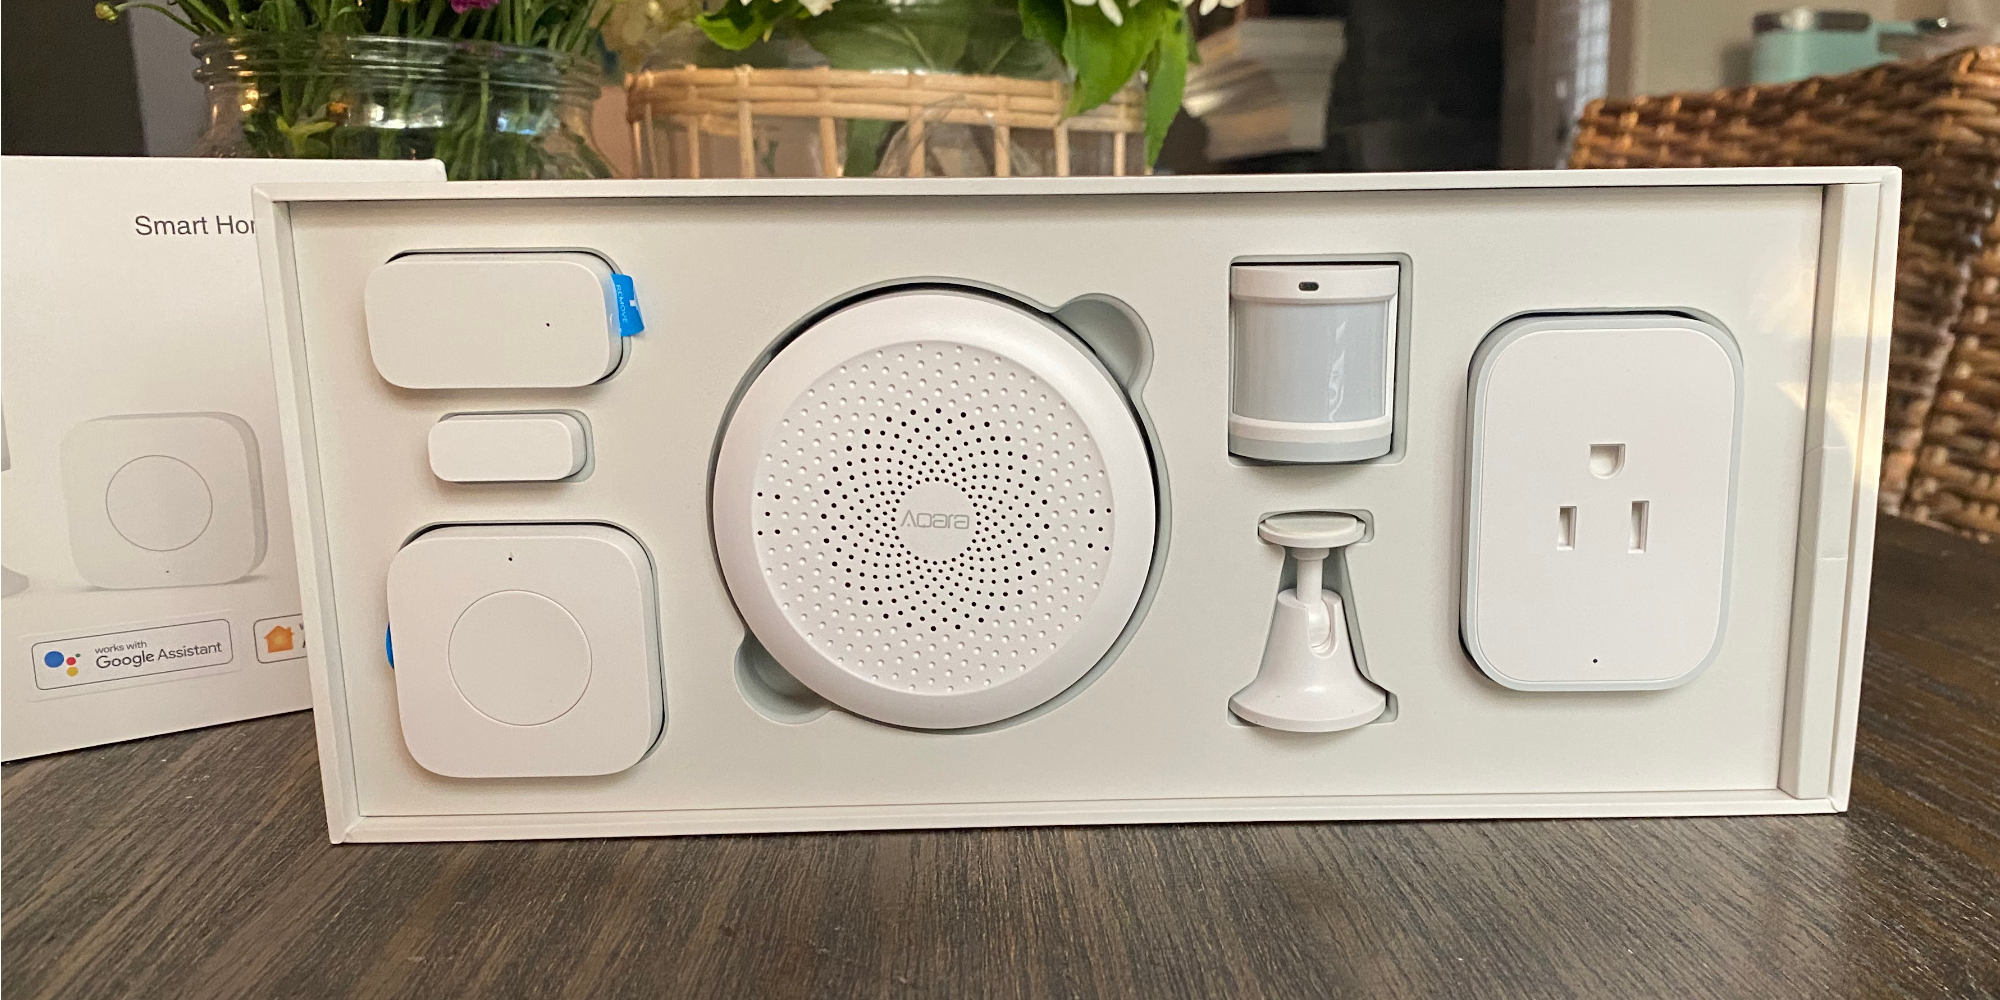 Aqara Smart Home System: Control Everything for Much Less